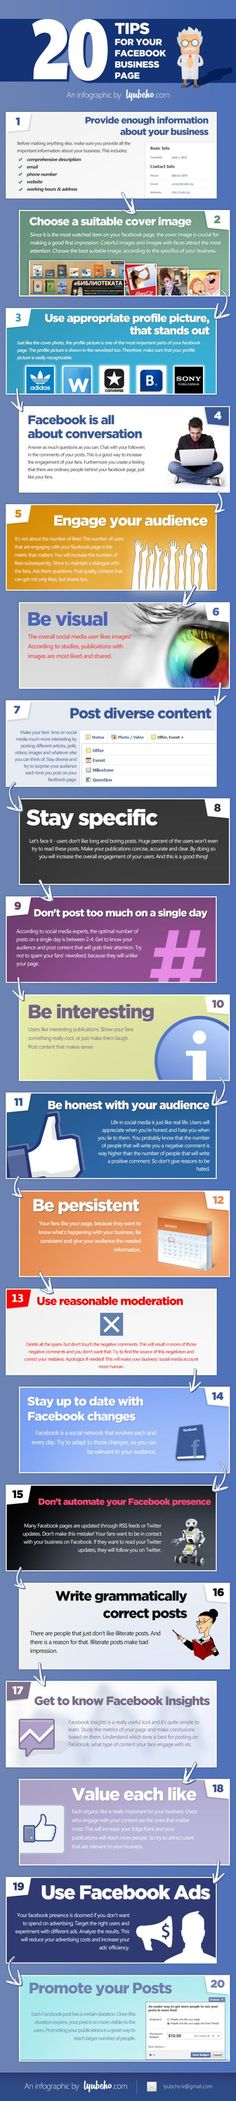 "SOCIAL MEDIA -         ""20 tips for your #Facebook business page #Infographic #socialmedia."""